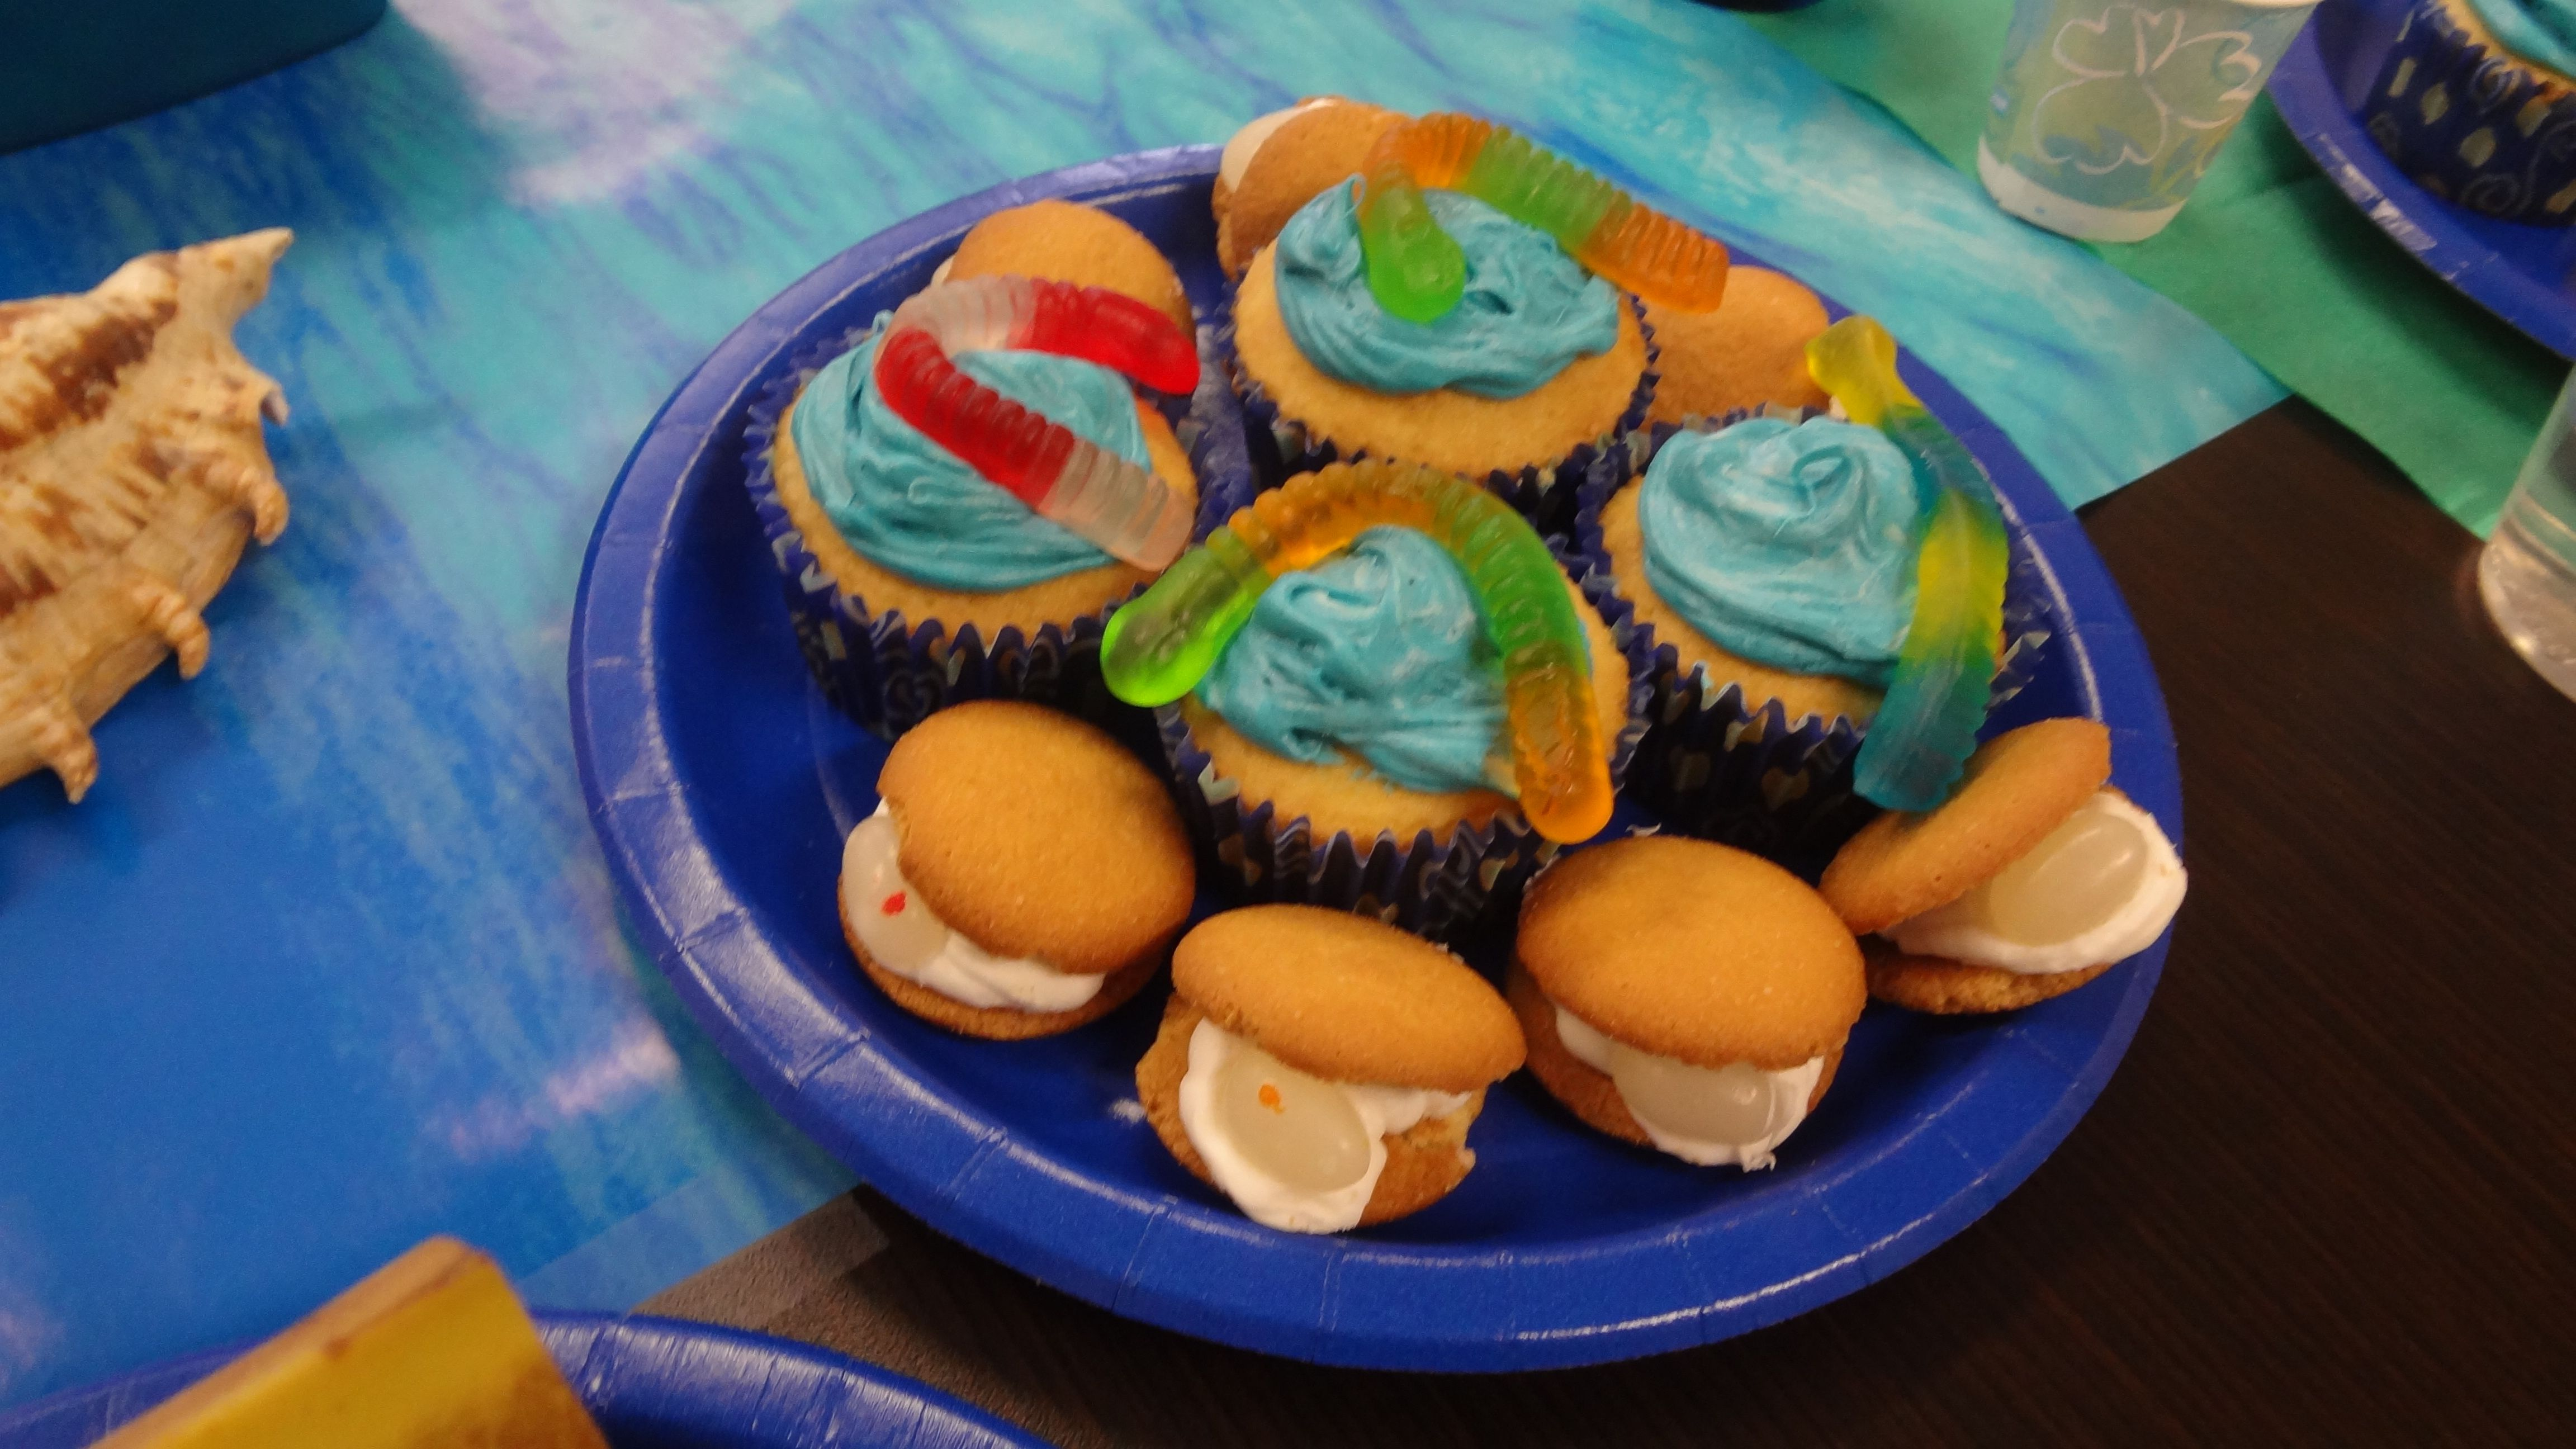 Make oysters with frosting and a jelly bean inside two vanilla wafers. Add blue frosting and a gummy worm to your choice of cupcakes! #bookit #books #kidslit #reading #party